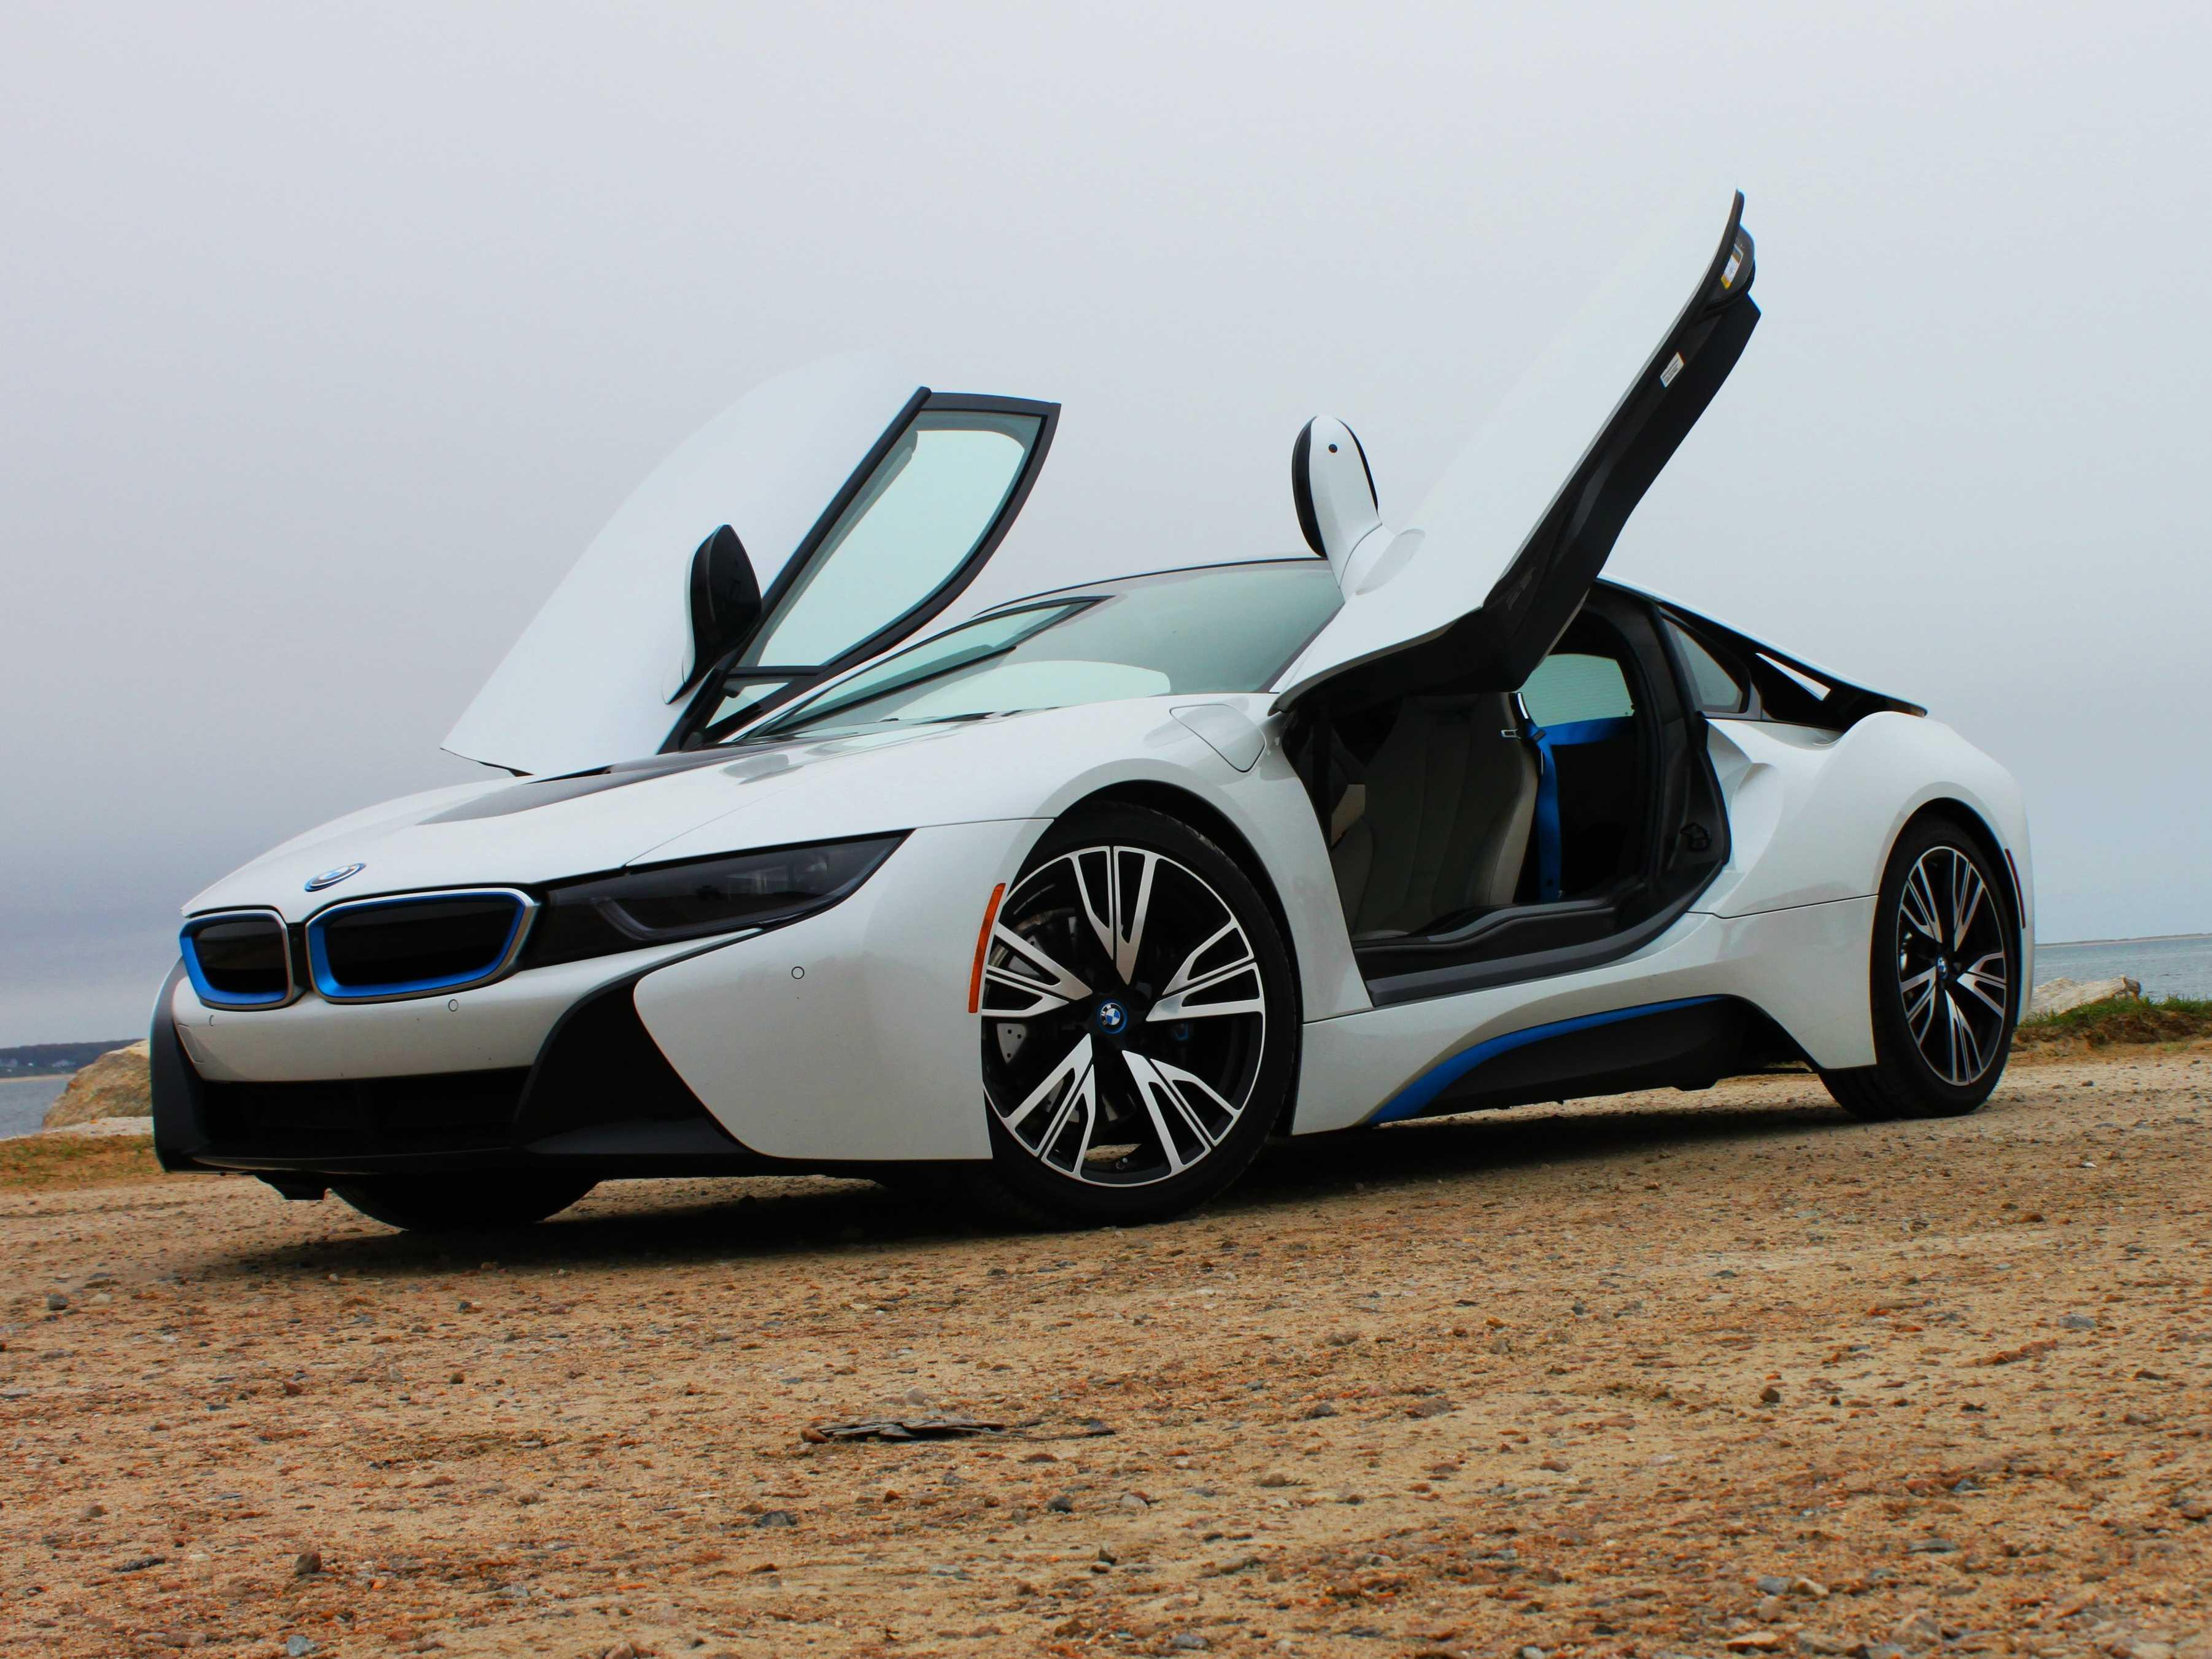 Likely cars of the future likely cars of the future http www - The Bmw I8 Is The Sports Car Of The Future And We Drove It Through America S Past